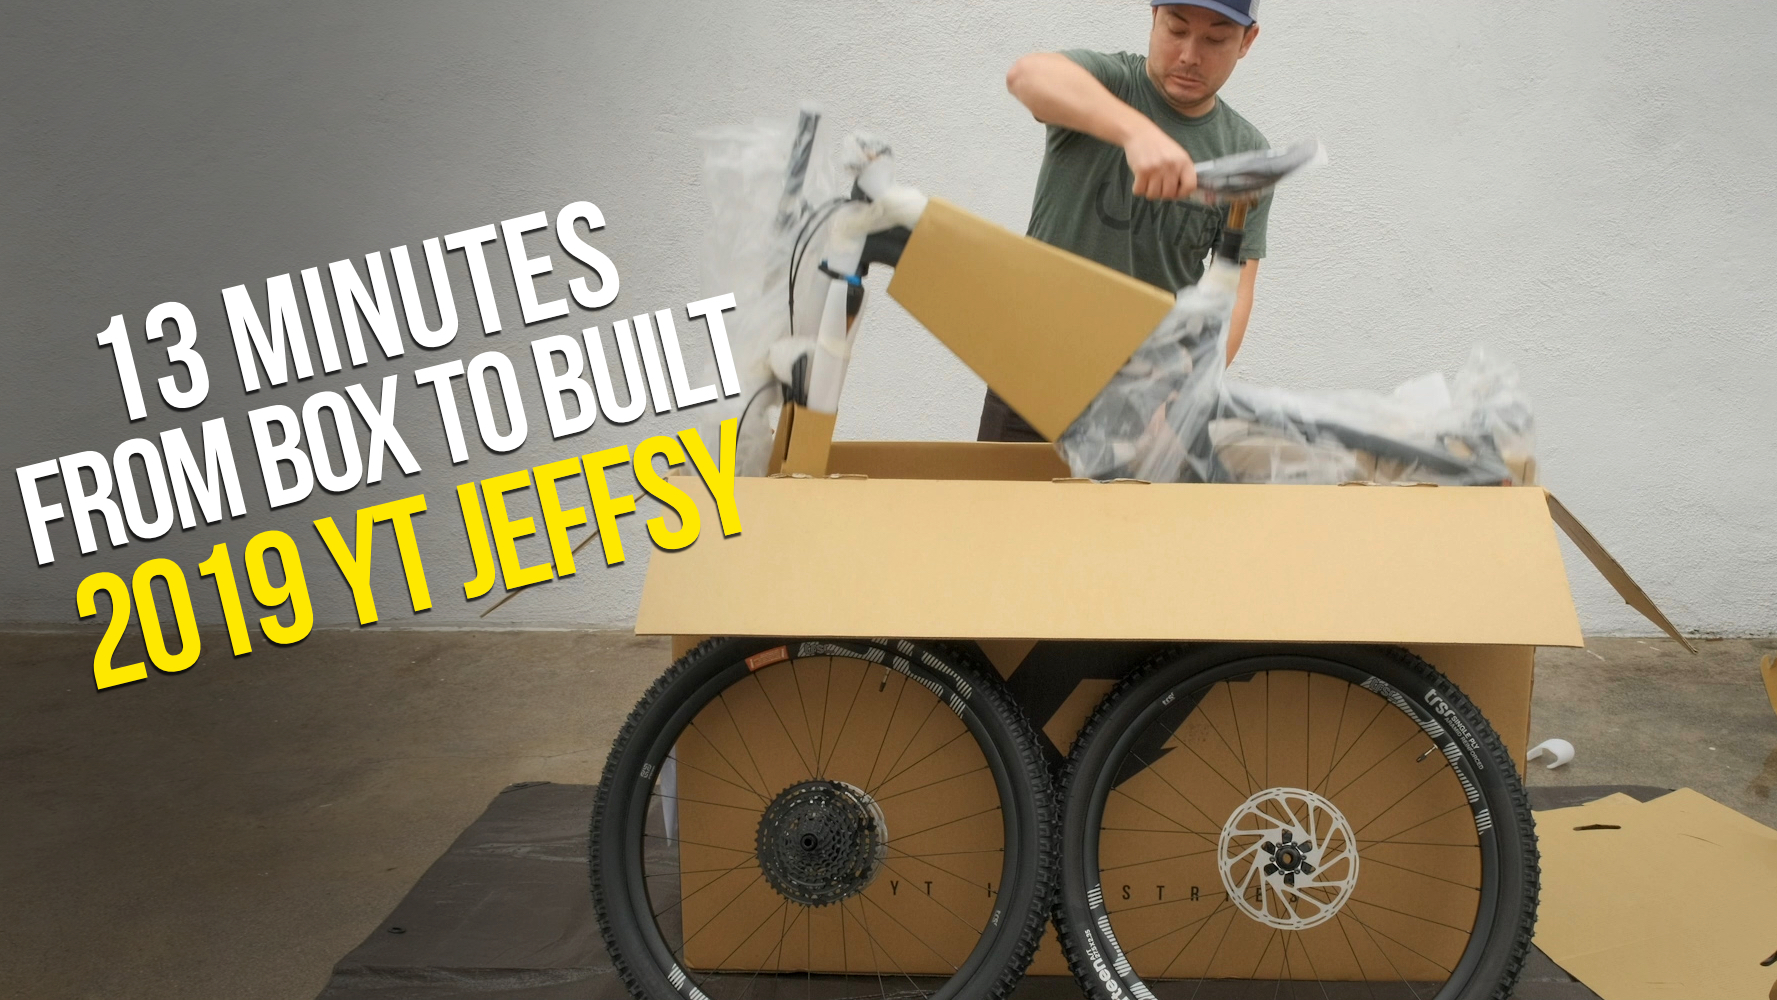 13 Minutes from Box to Built - 2019 YT JEFFSY UNBOXING